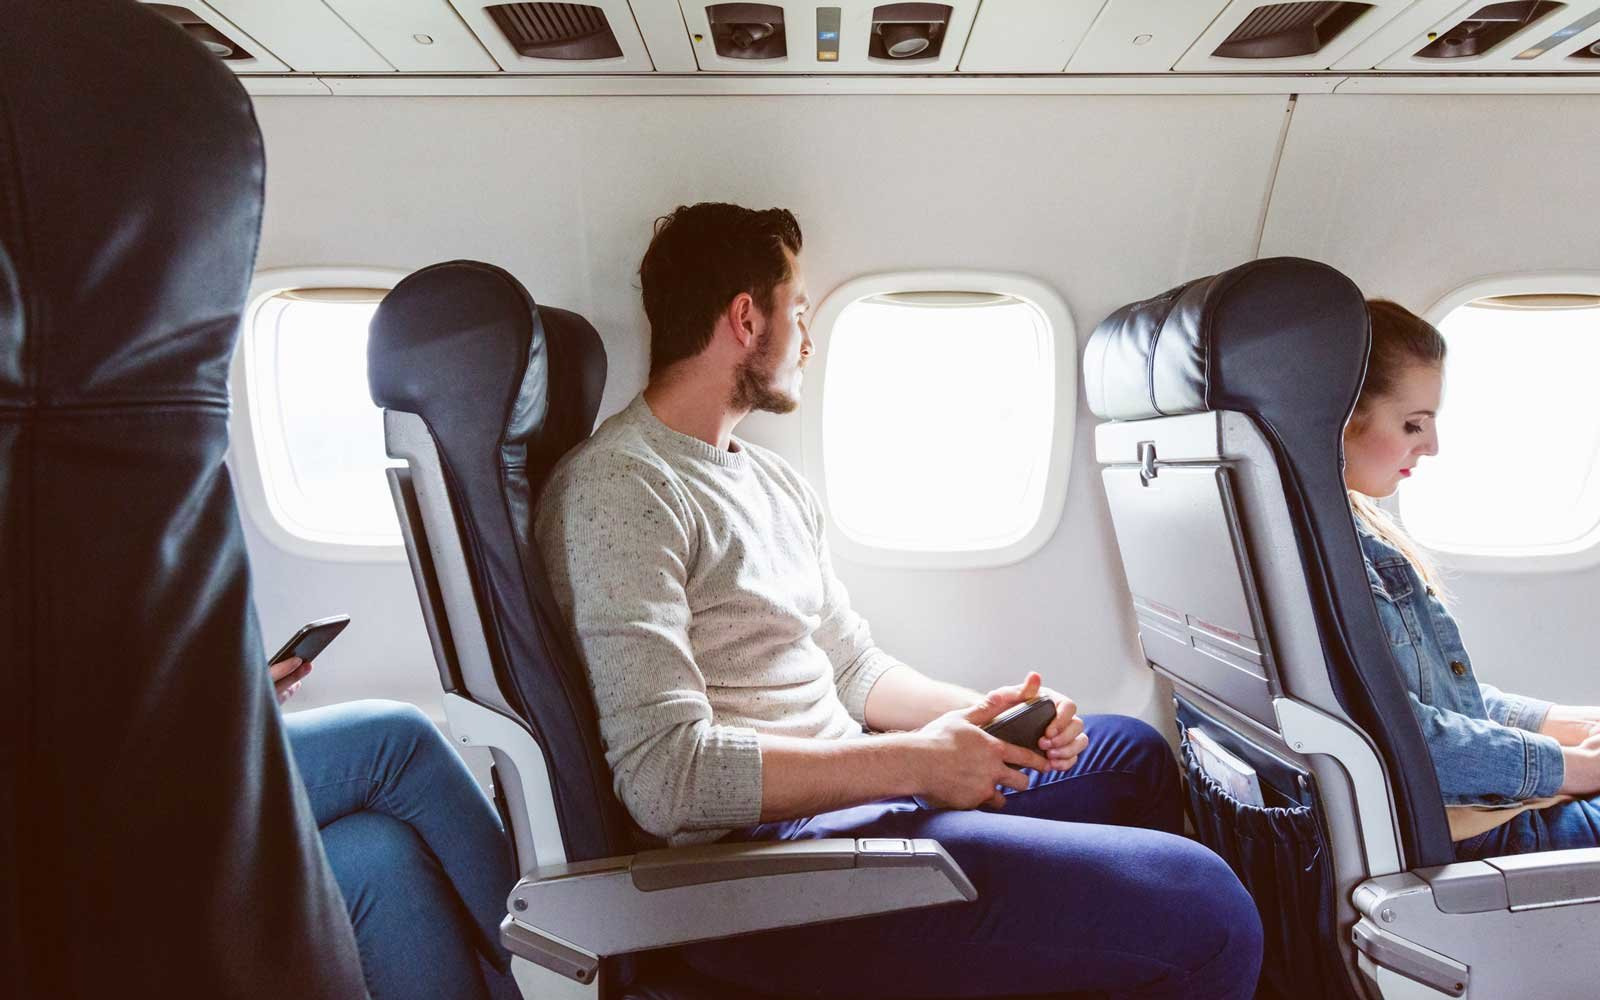 Young man sitting in airplane near window